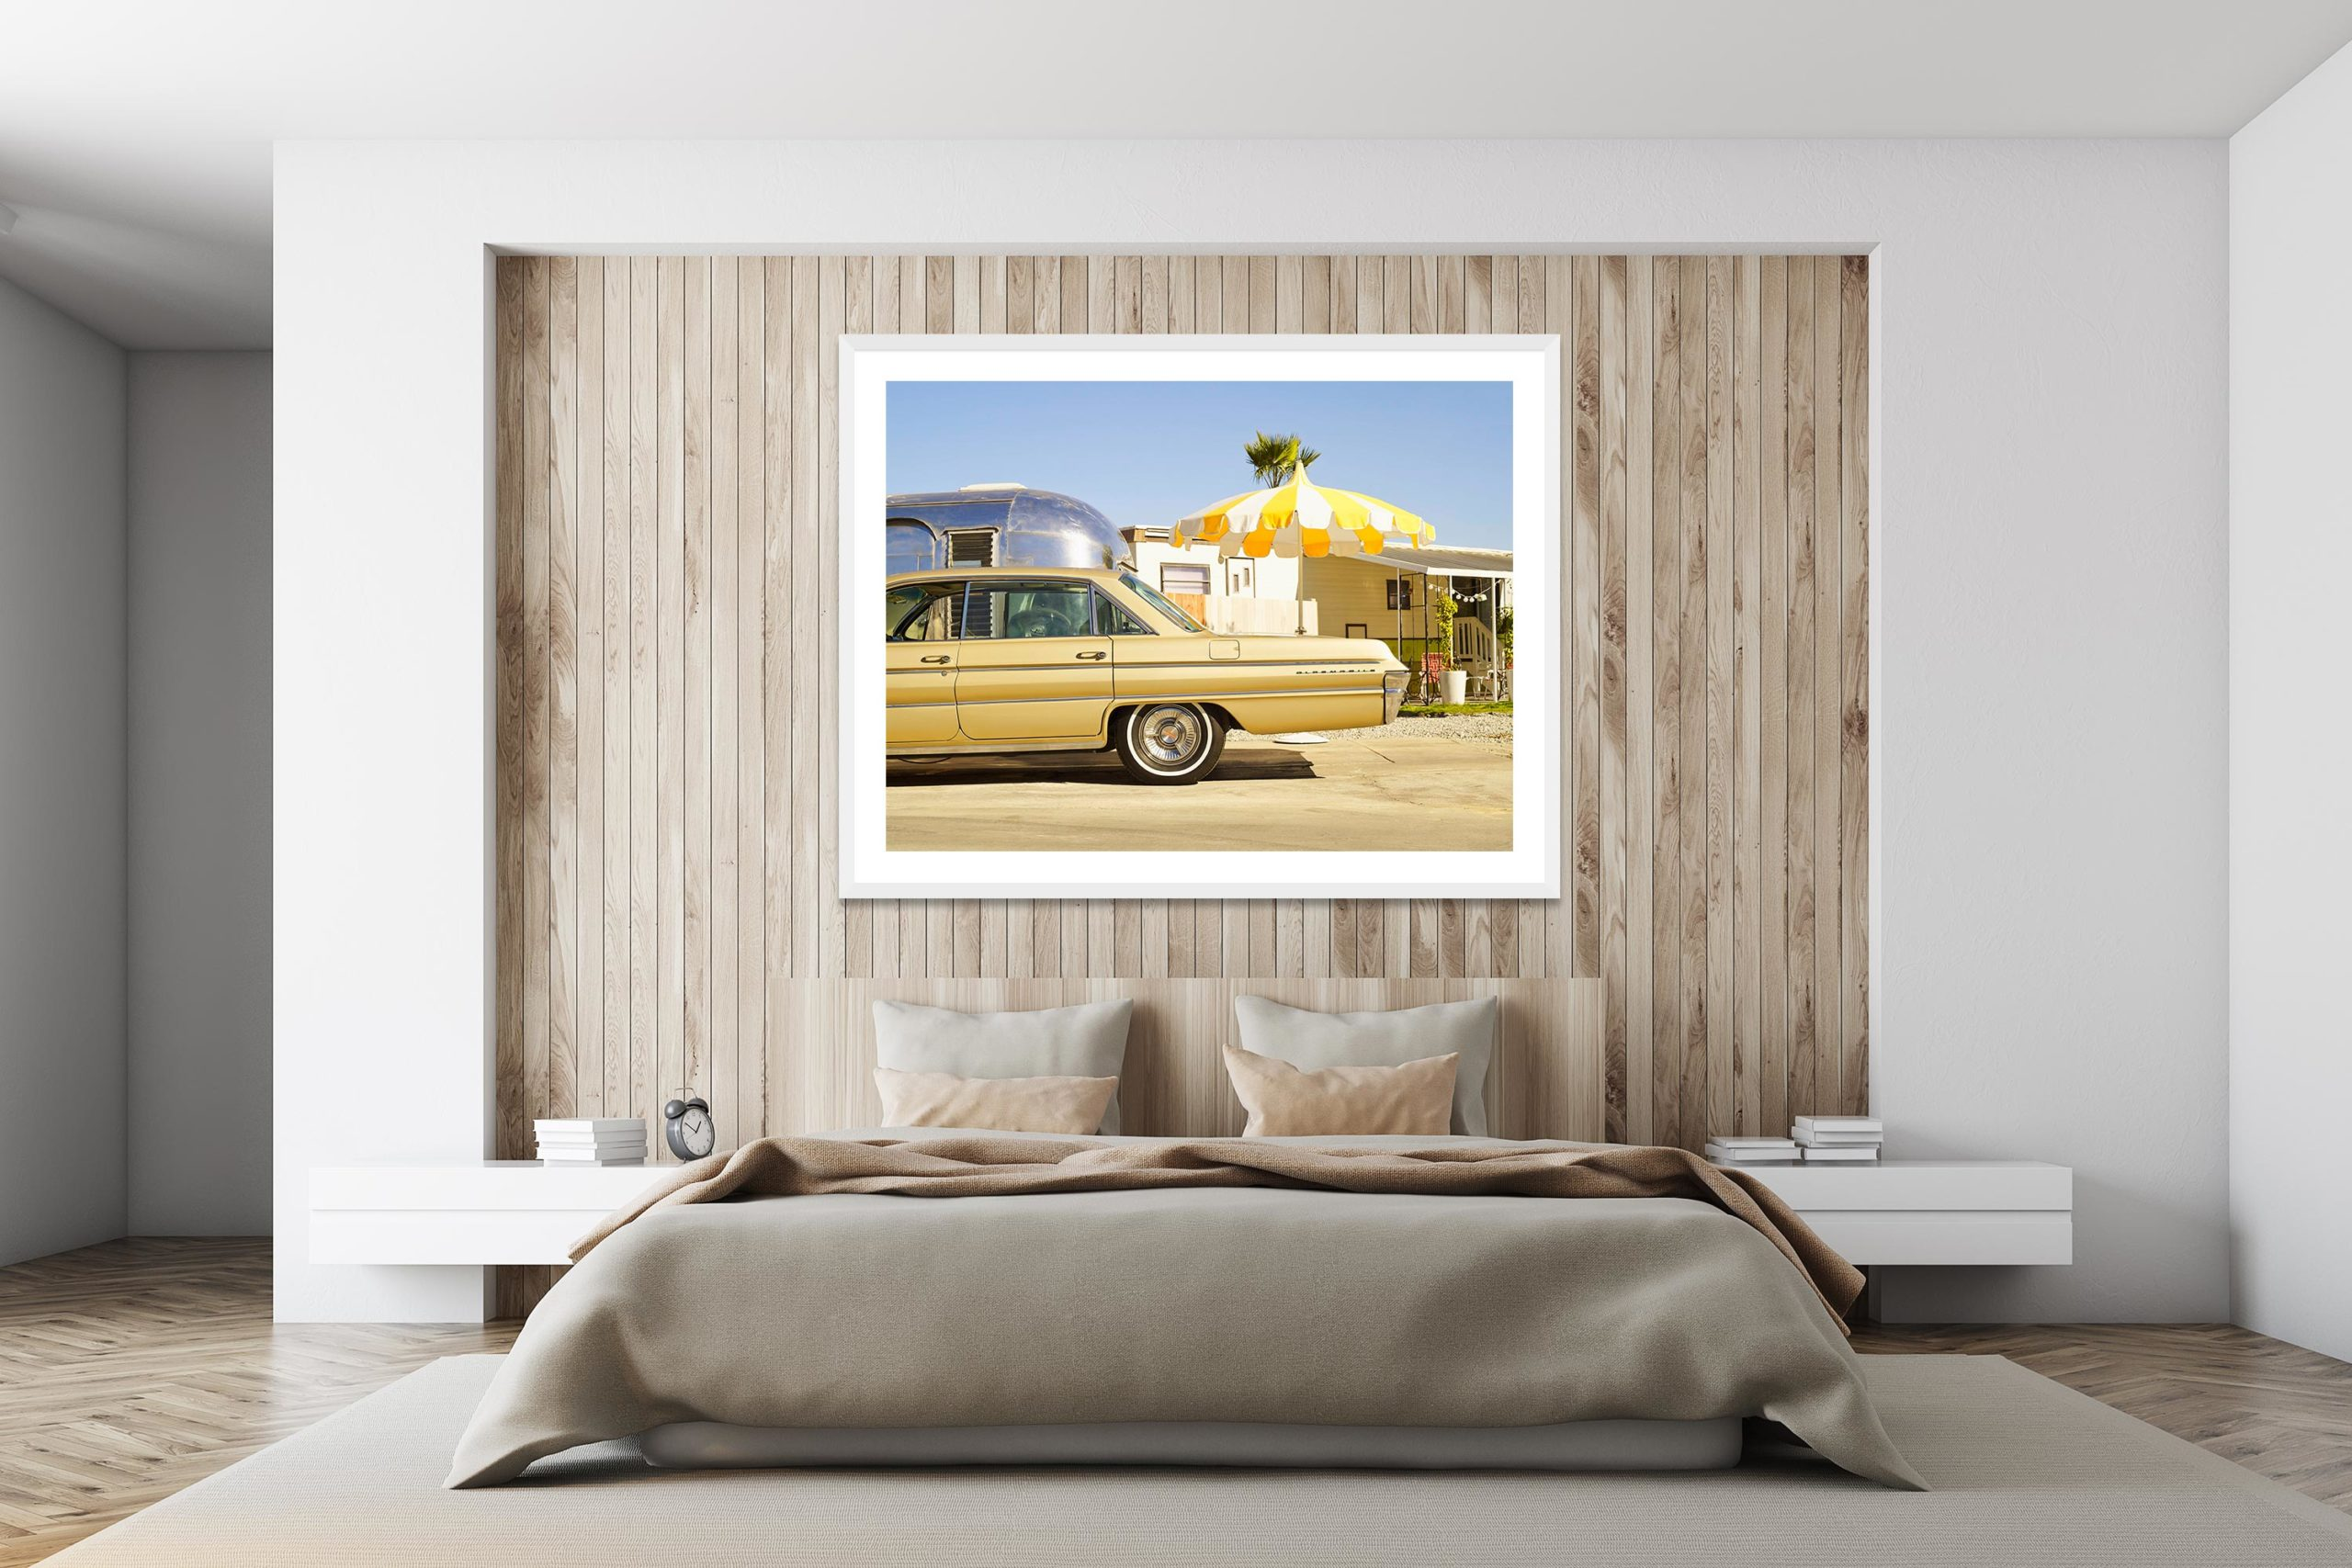 Oldsmobile In The Trailer Park - White Frame - I Heart Palm Springs Collection - Fine Art Photography by Toby Dixon